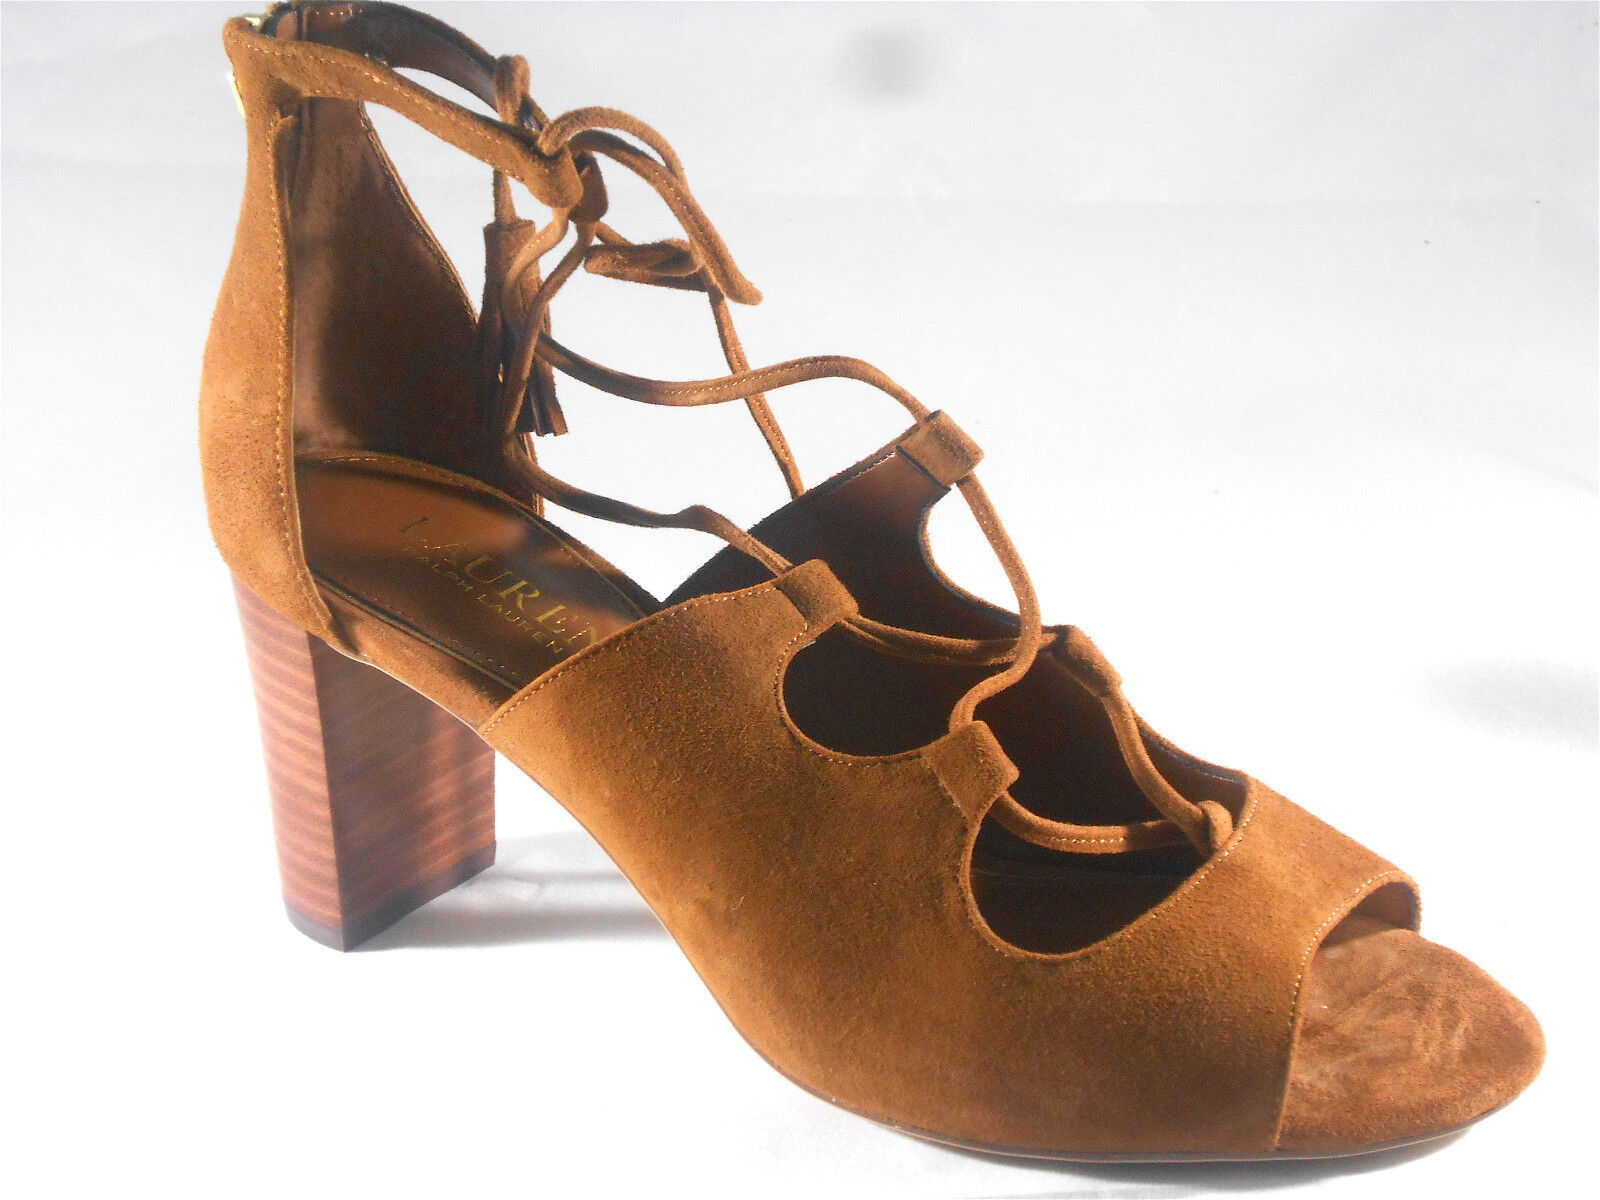 LAUREN BY RALPH LAUREN (HASEL KID SUEDE HEEL) WOMENS SIZE 8.5 BRAND NEW